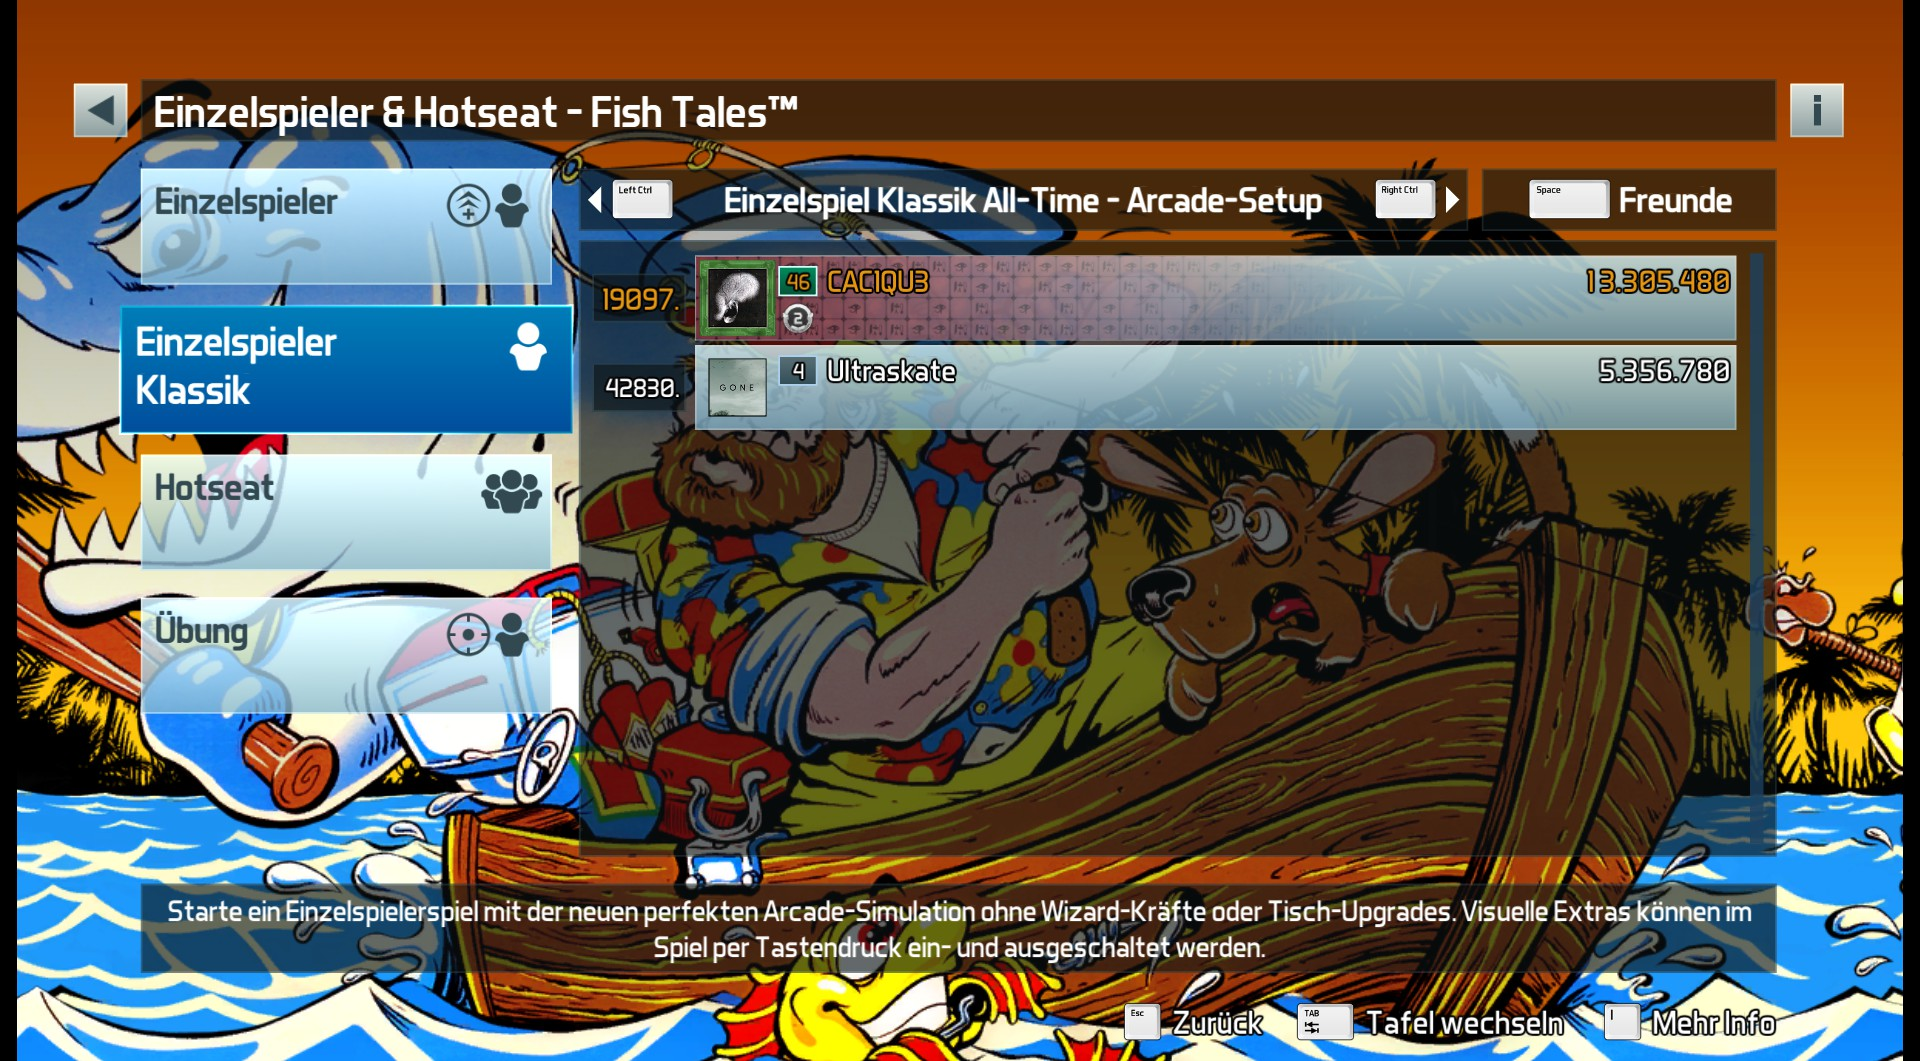 CAC1QU3: Pinball FX3: Fish Tales [Arcade] (PC) 13,305,480 points on 2019-03-26 21:15:06